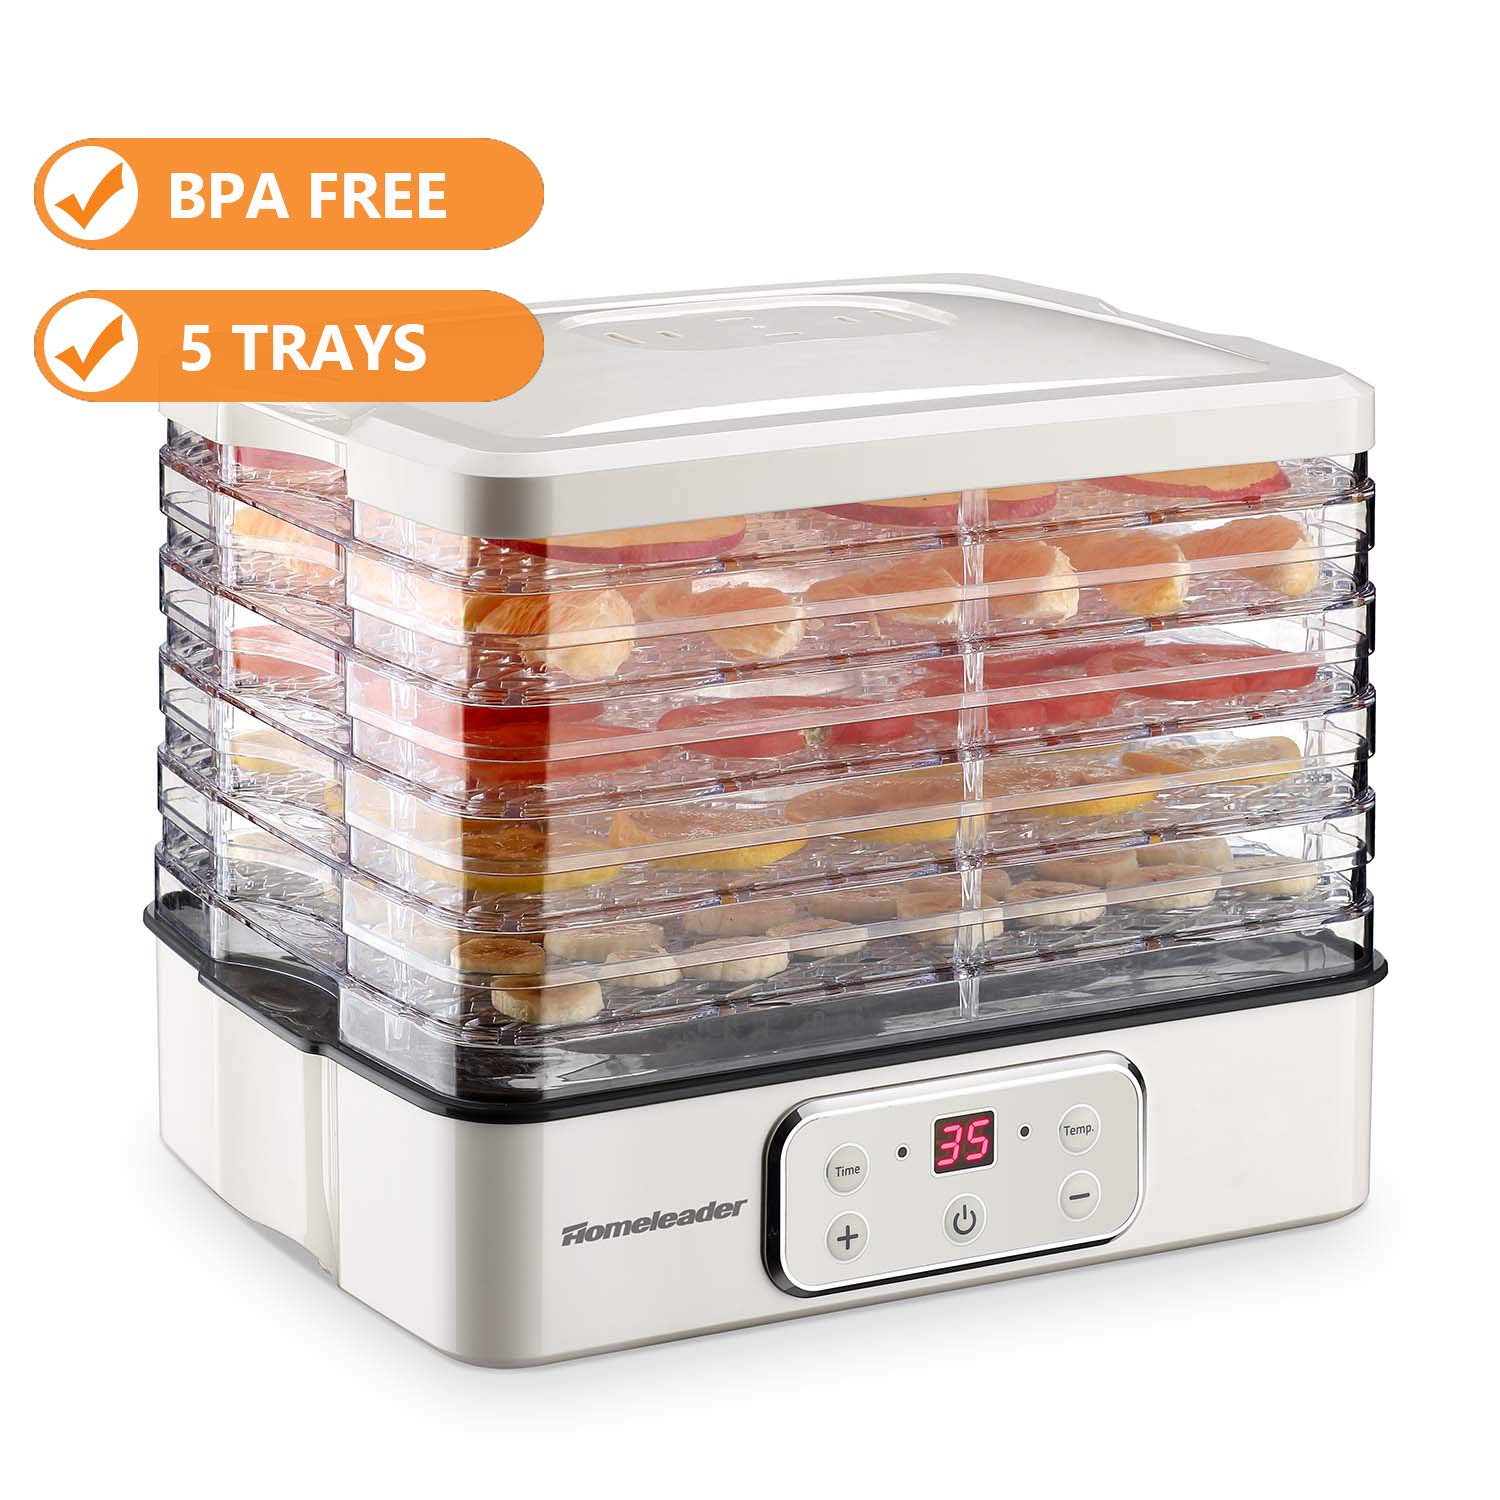 Food Dehydrator, Electric Digital Food Dehydrator Machine for Jerky, Fruit, Vegetables & Nuts, Vegetable Dryer with Timer and Temperature Control, Homeleader Food Dehydrator with Five Trays, LCD Display Screen, K33-022